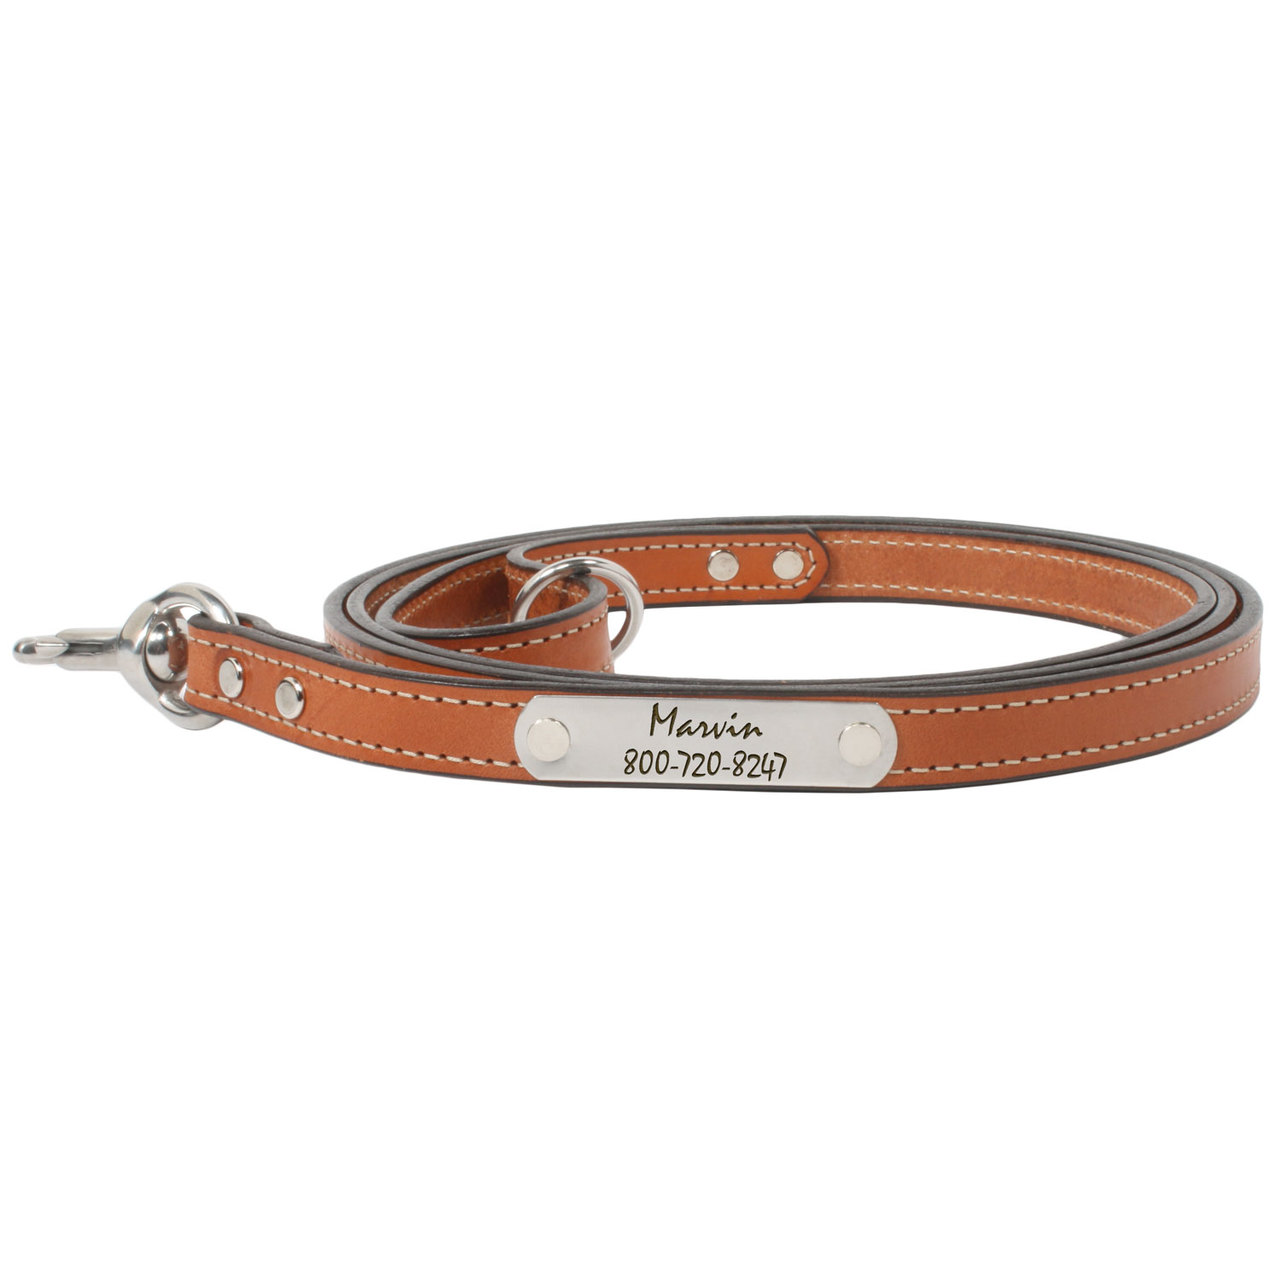 Personalized Bridle Leather Snap Leash - London Tan